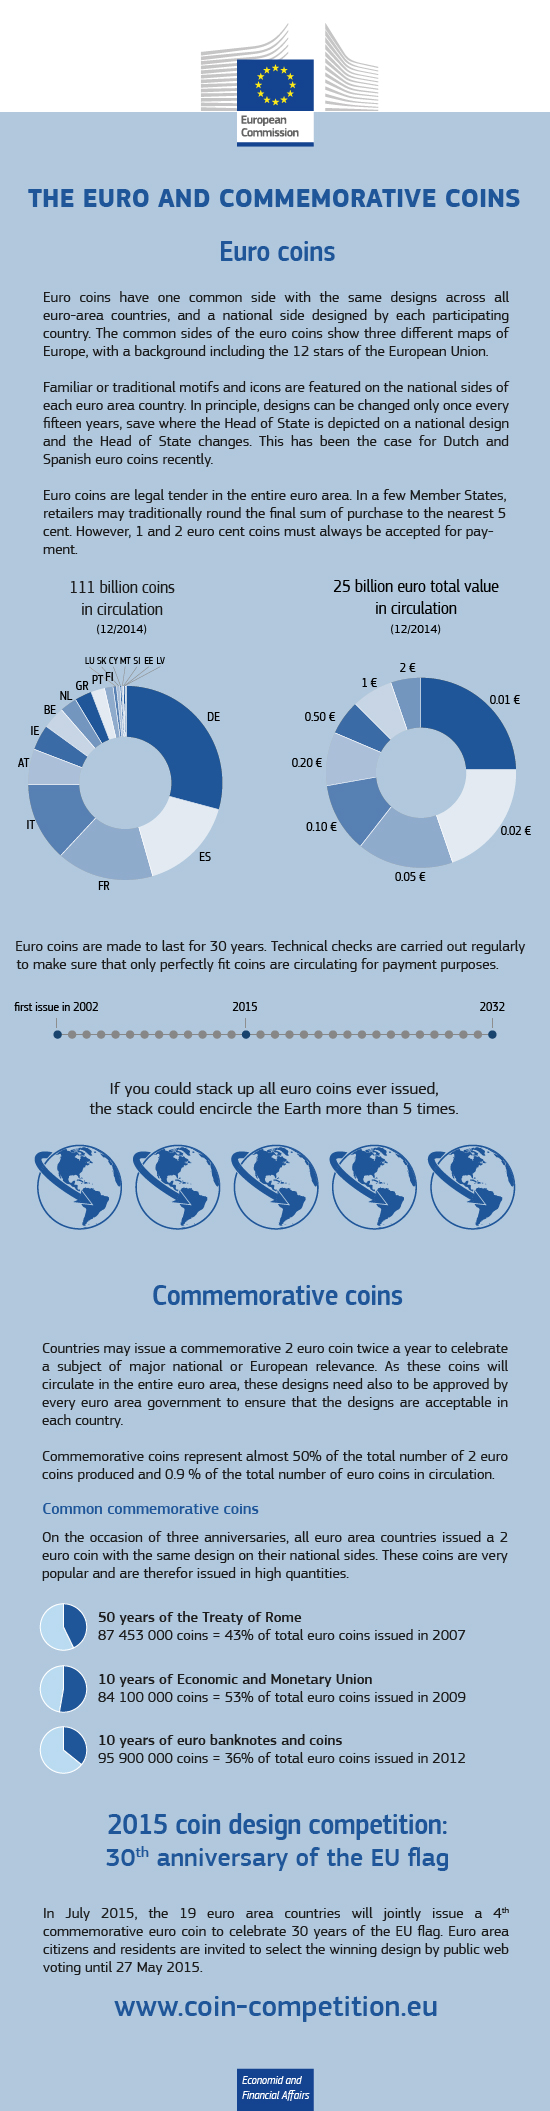 Info graphic: the euro, commemorative coins and the 2015 coin design competition